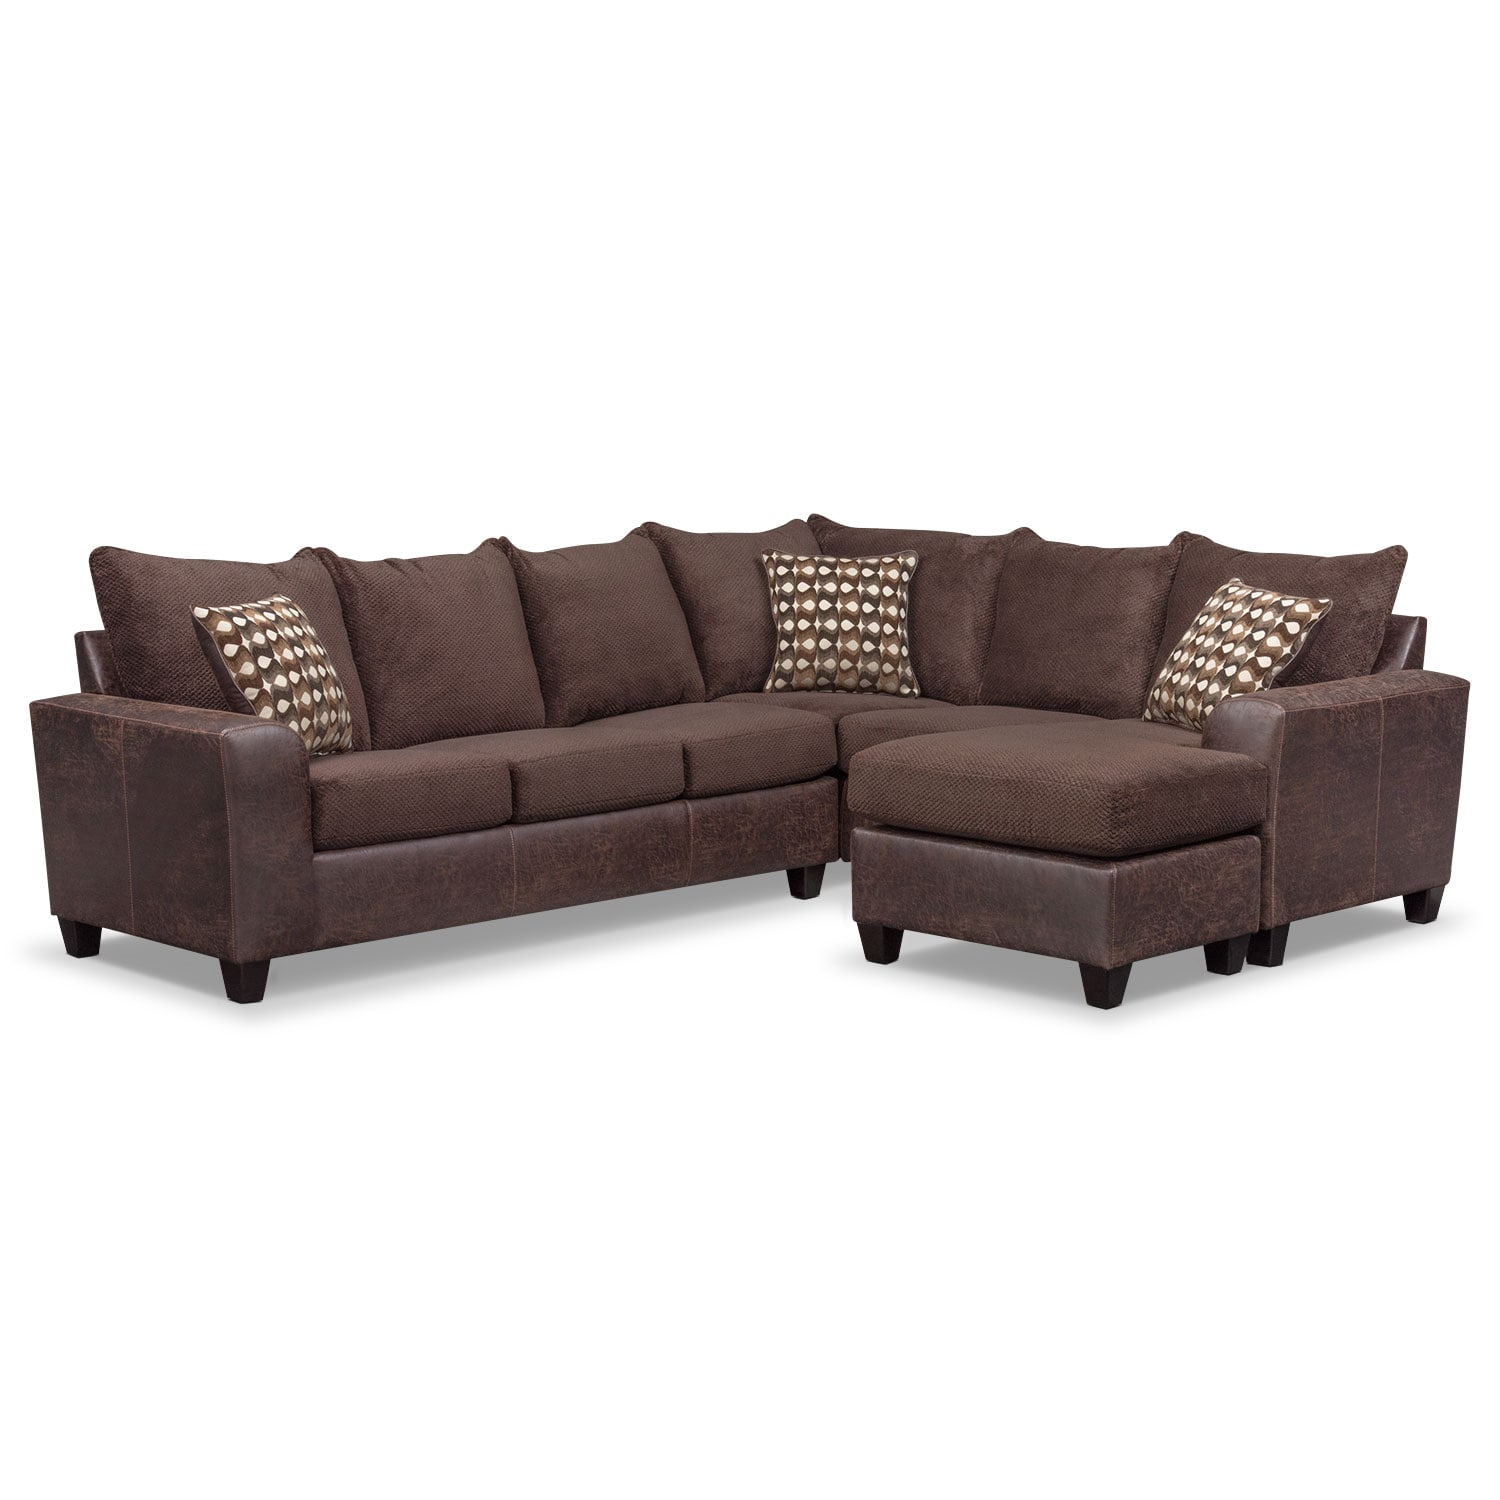 Brando 3-Piece Sectional with Modular Chaise - Chocolate | Value ...